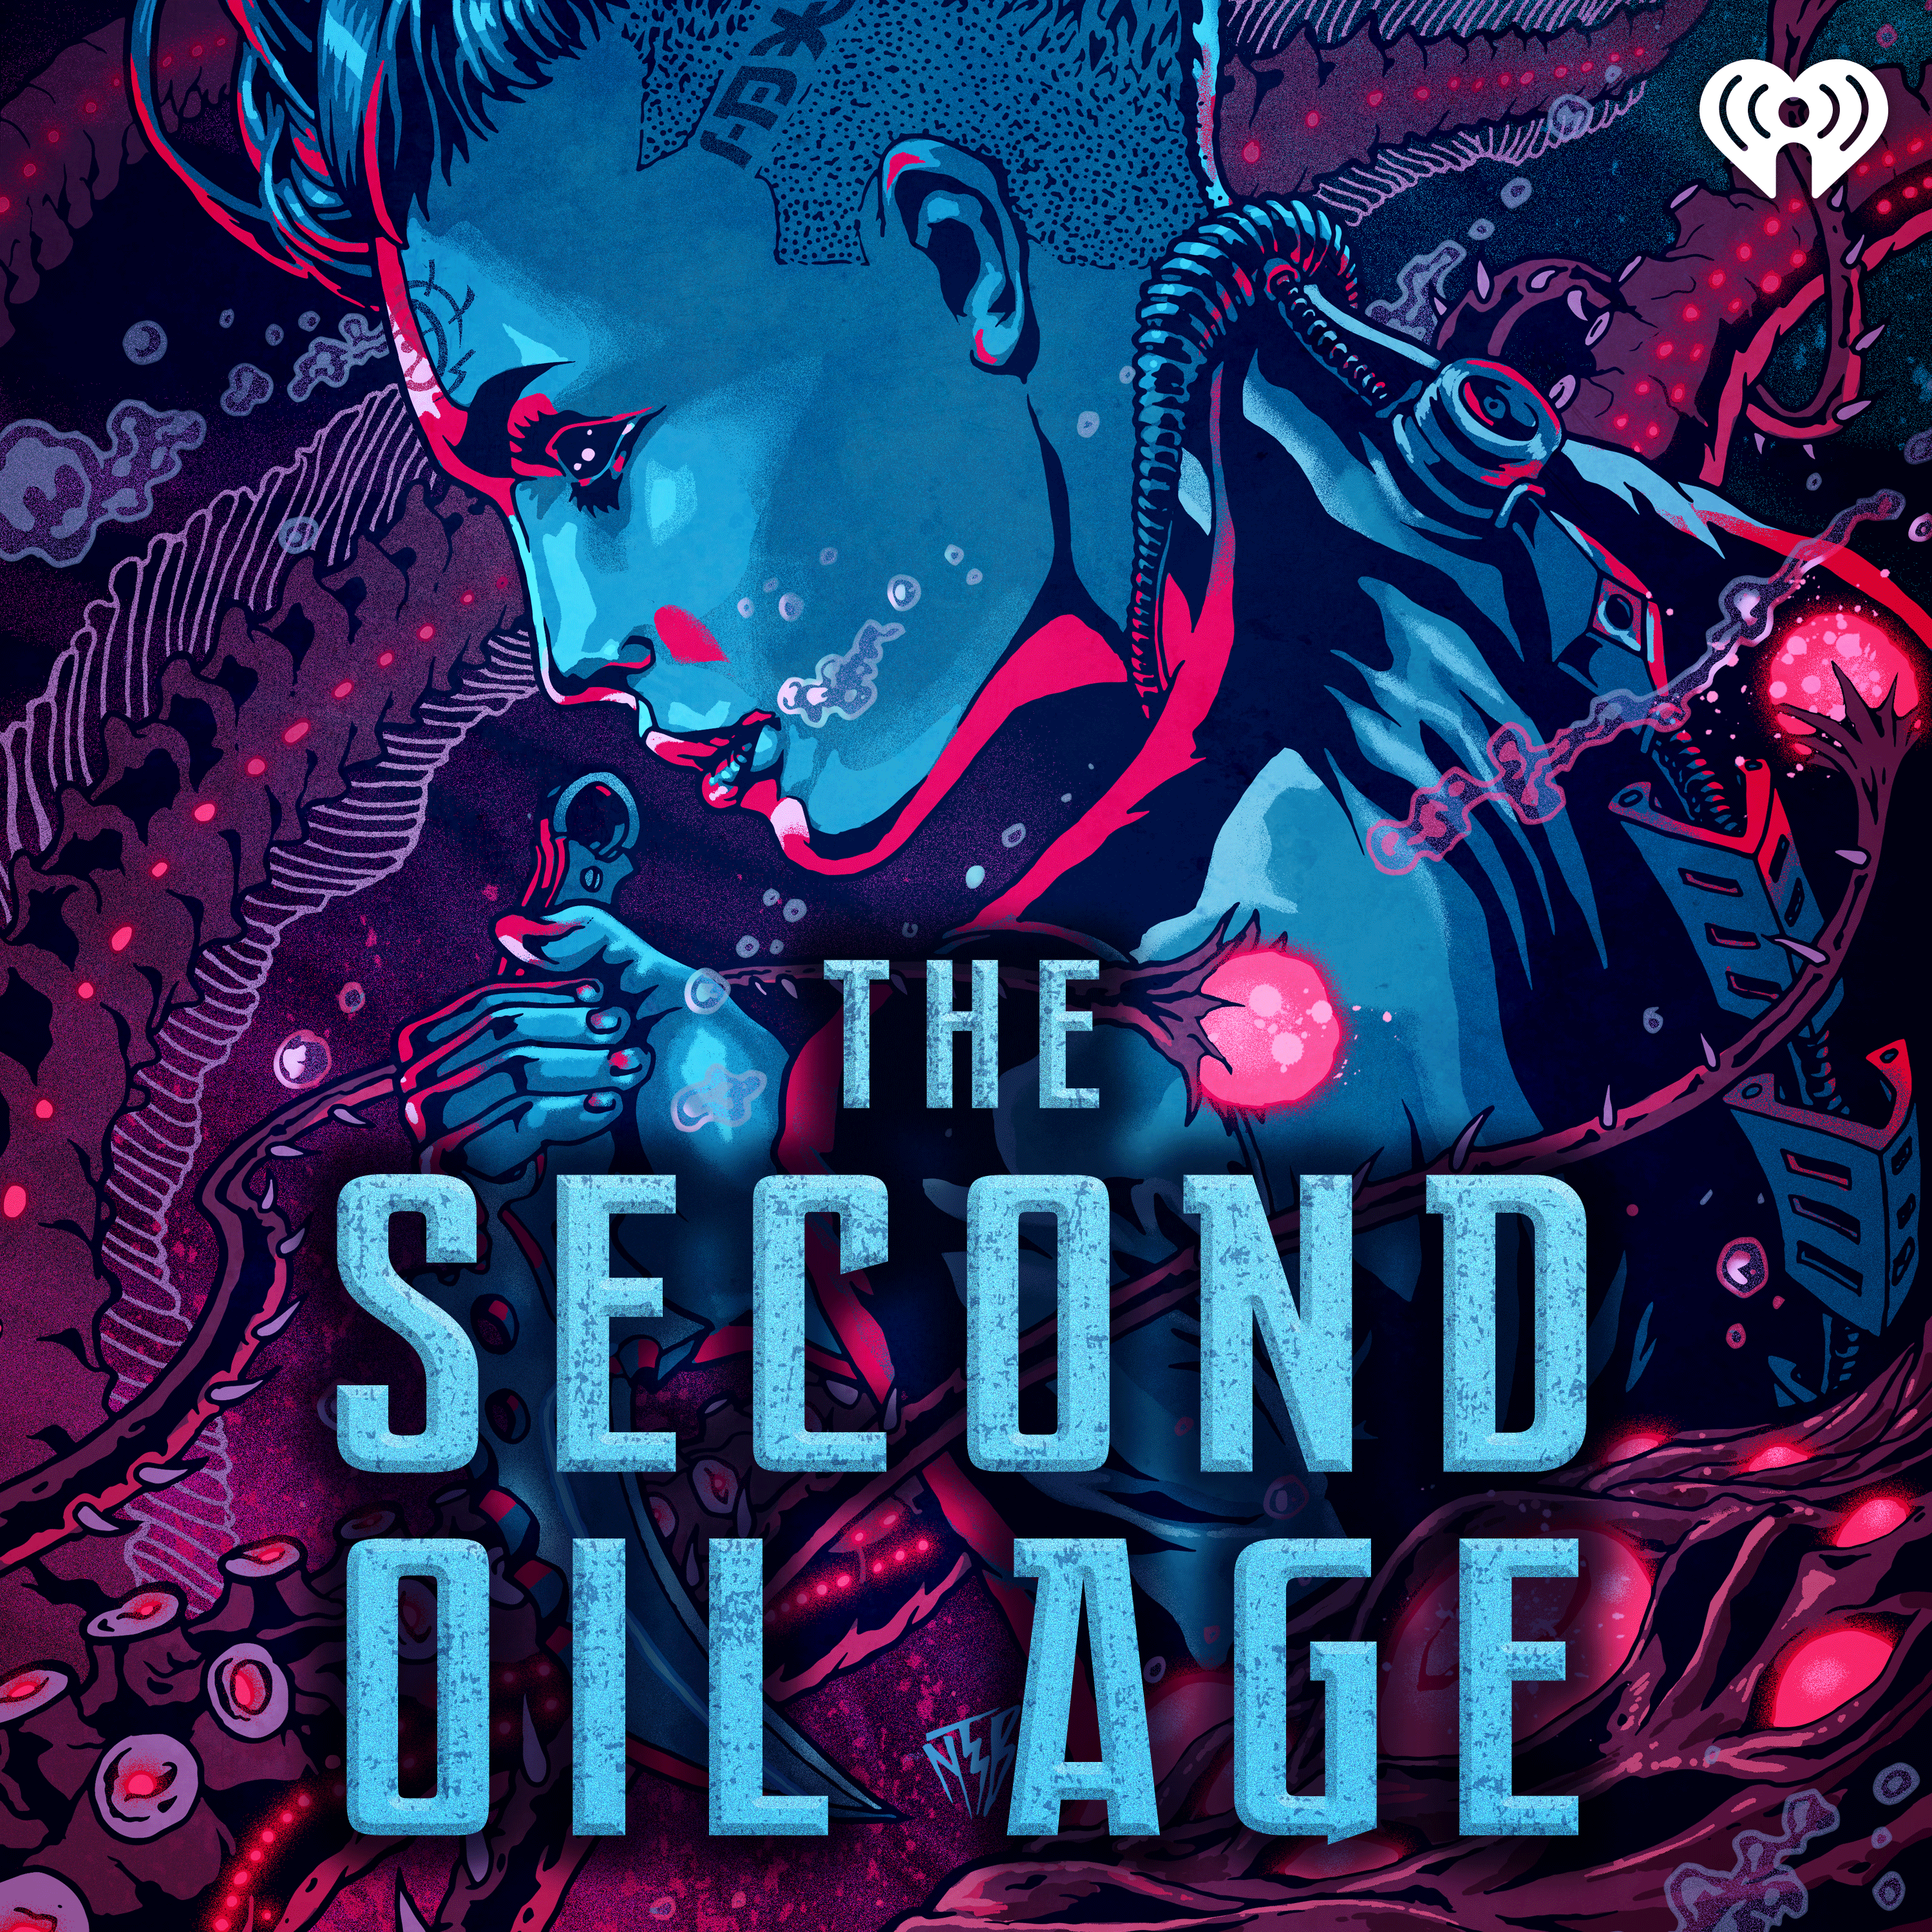 Introducing The Second Oil Age